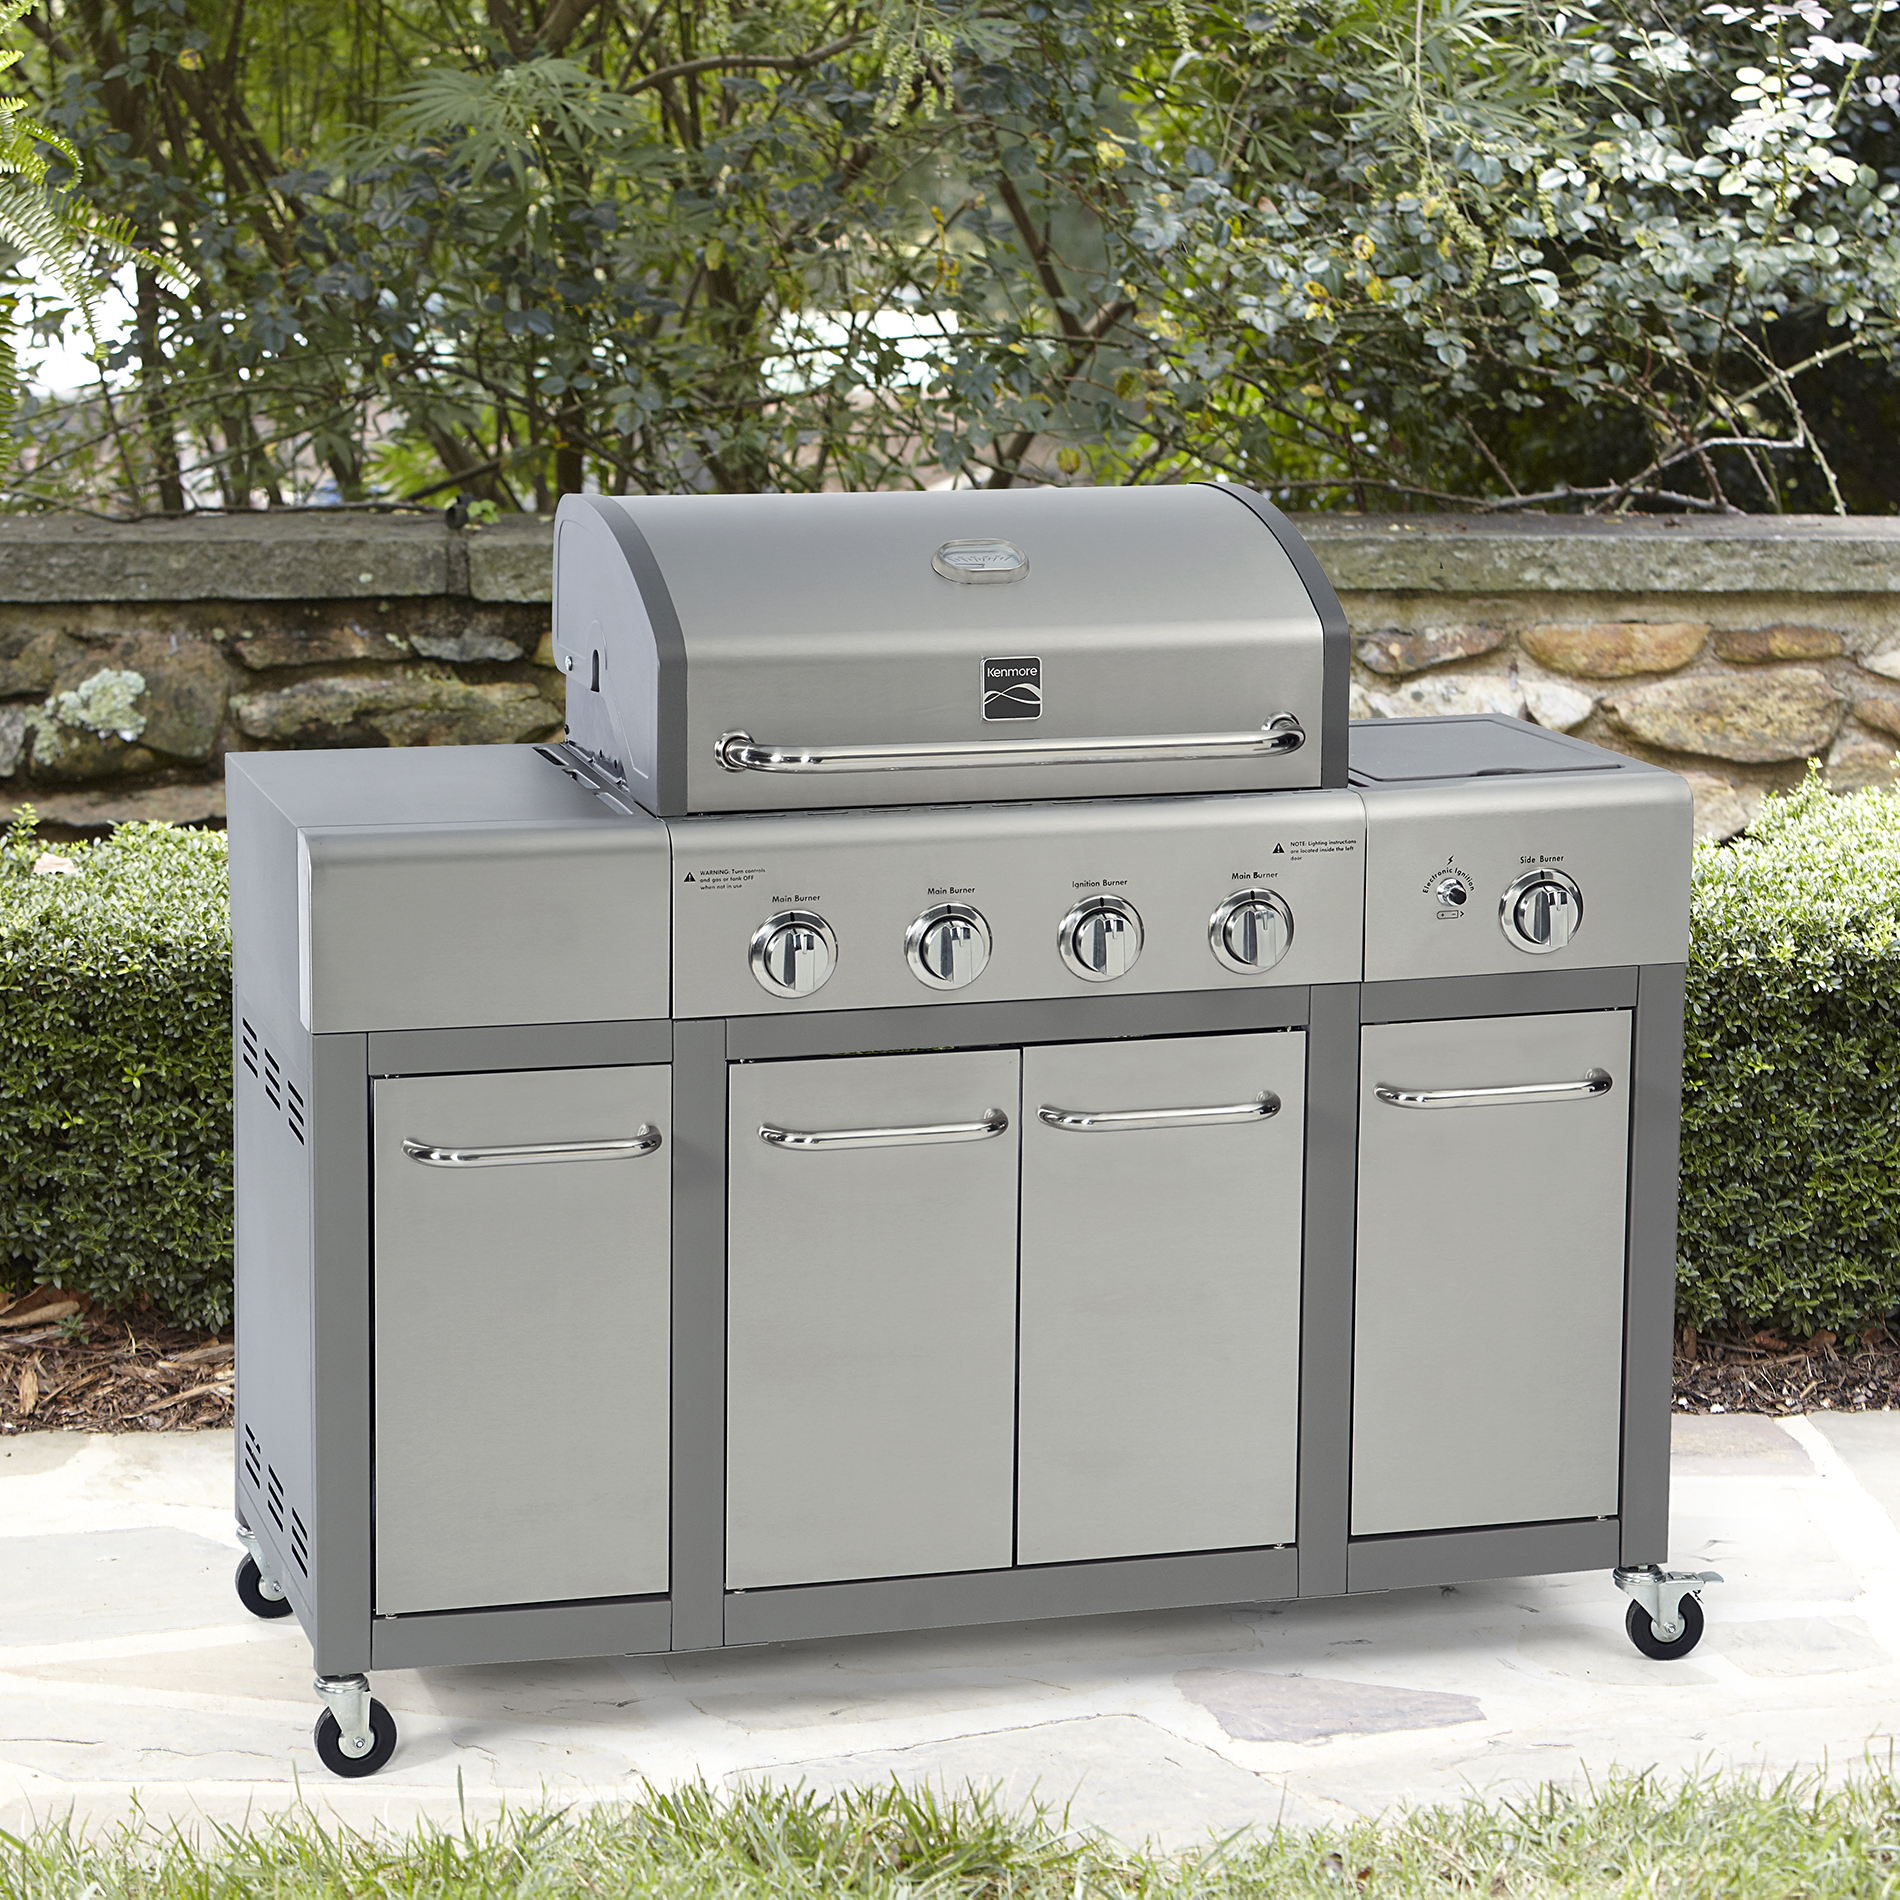 Outdoor Küche Portable Kenmore 4 Burner Gas Grill With Storage Stainless Steel